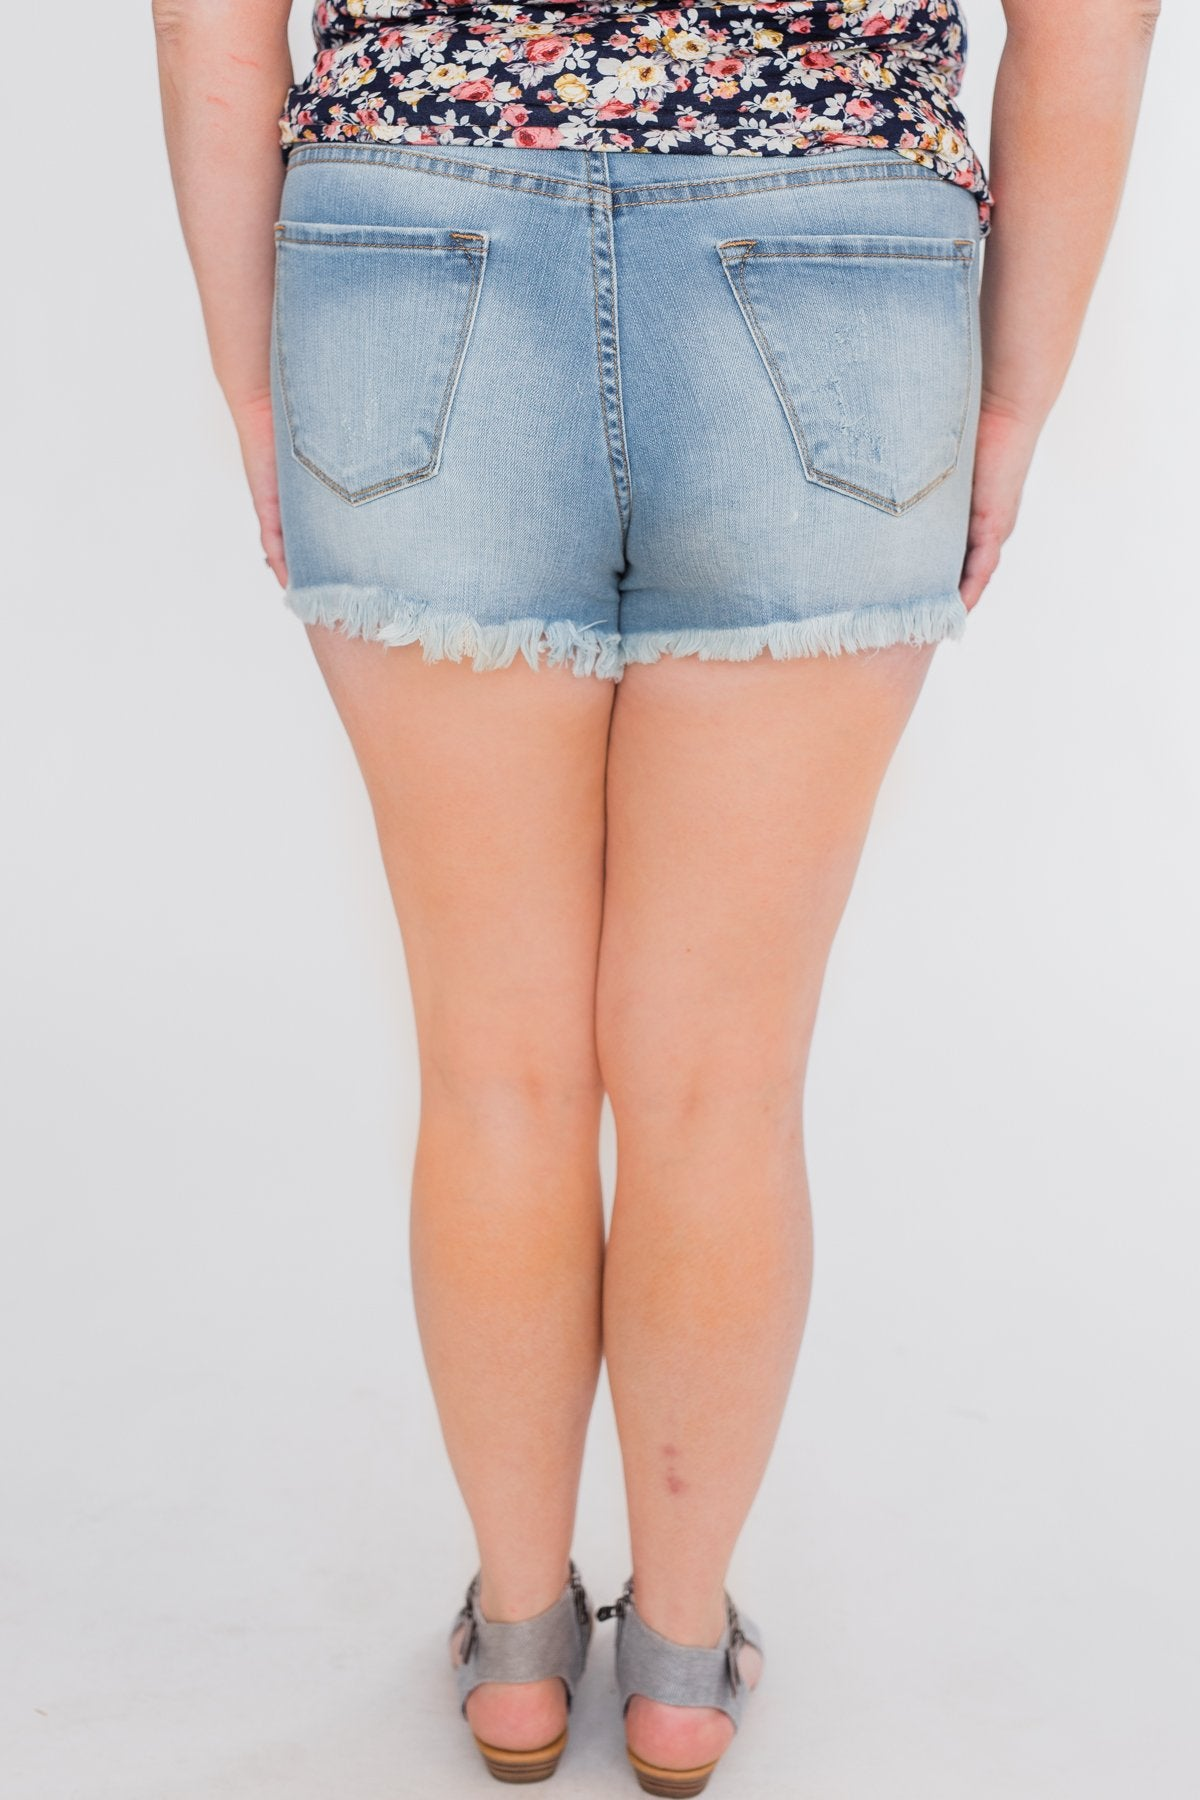 KanCan Shorts- Delilah Wash